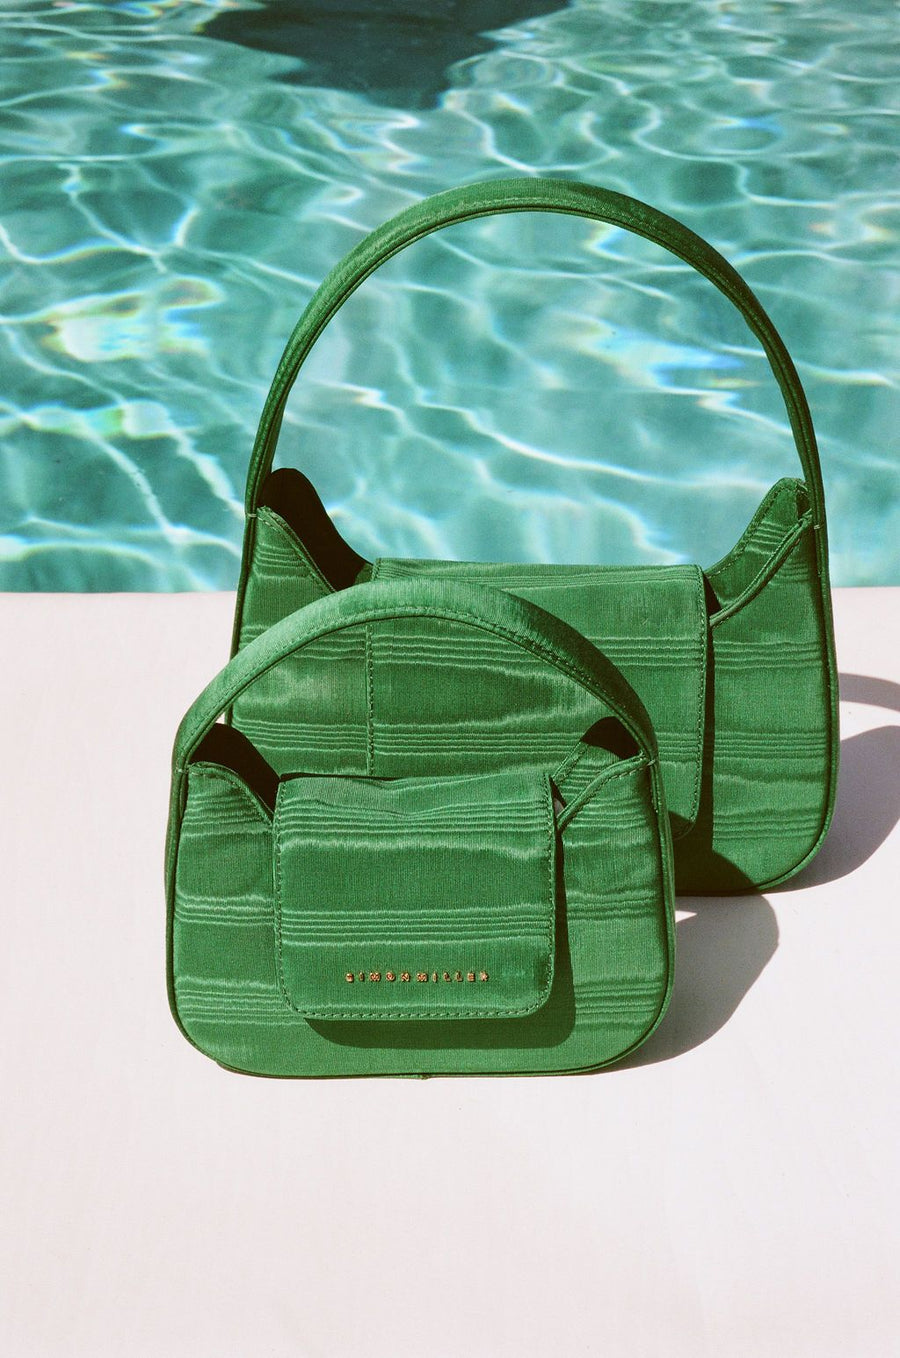 Mini Retro Bag in Jungle Green